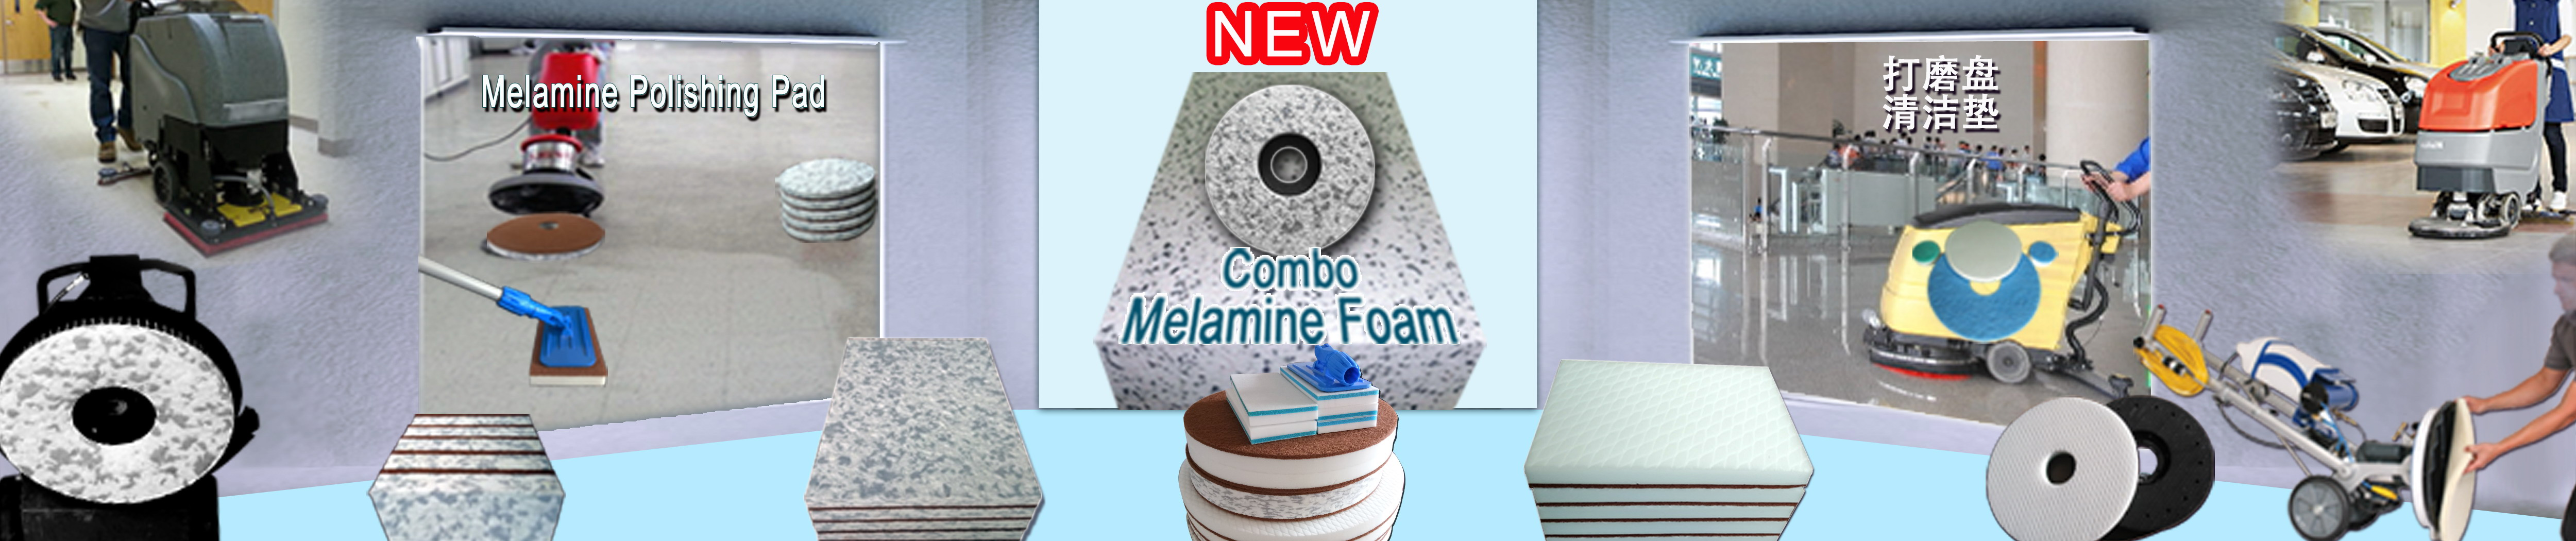 2020 Innovative products 17inch Combo Melamine powermix floor cleaning pads